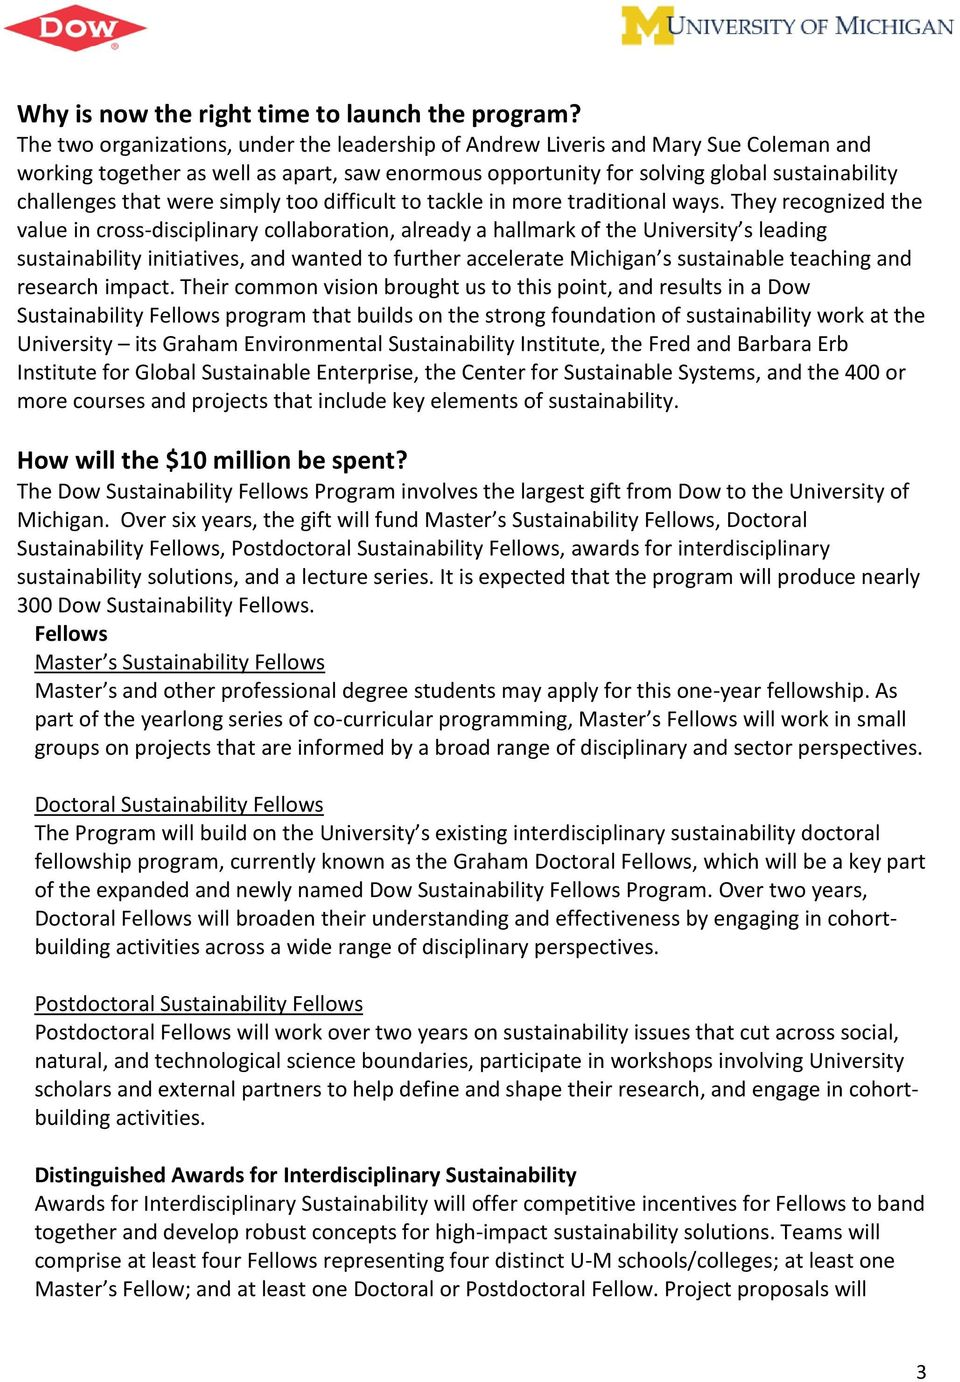 Dow Sustainability Fellows Program at the University of